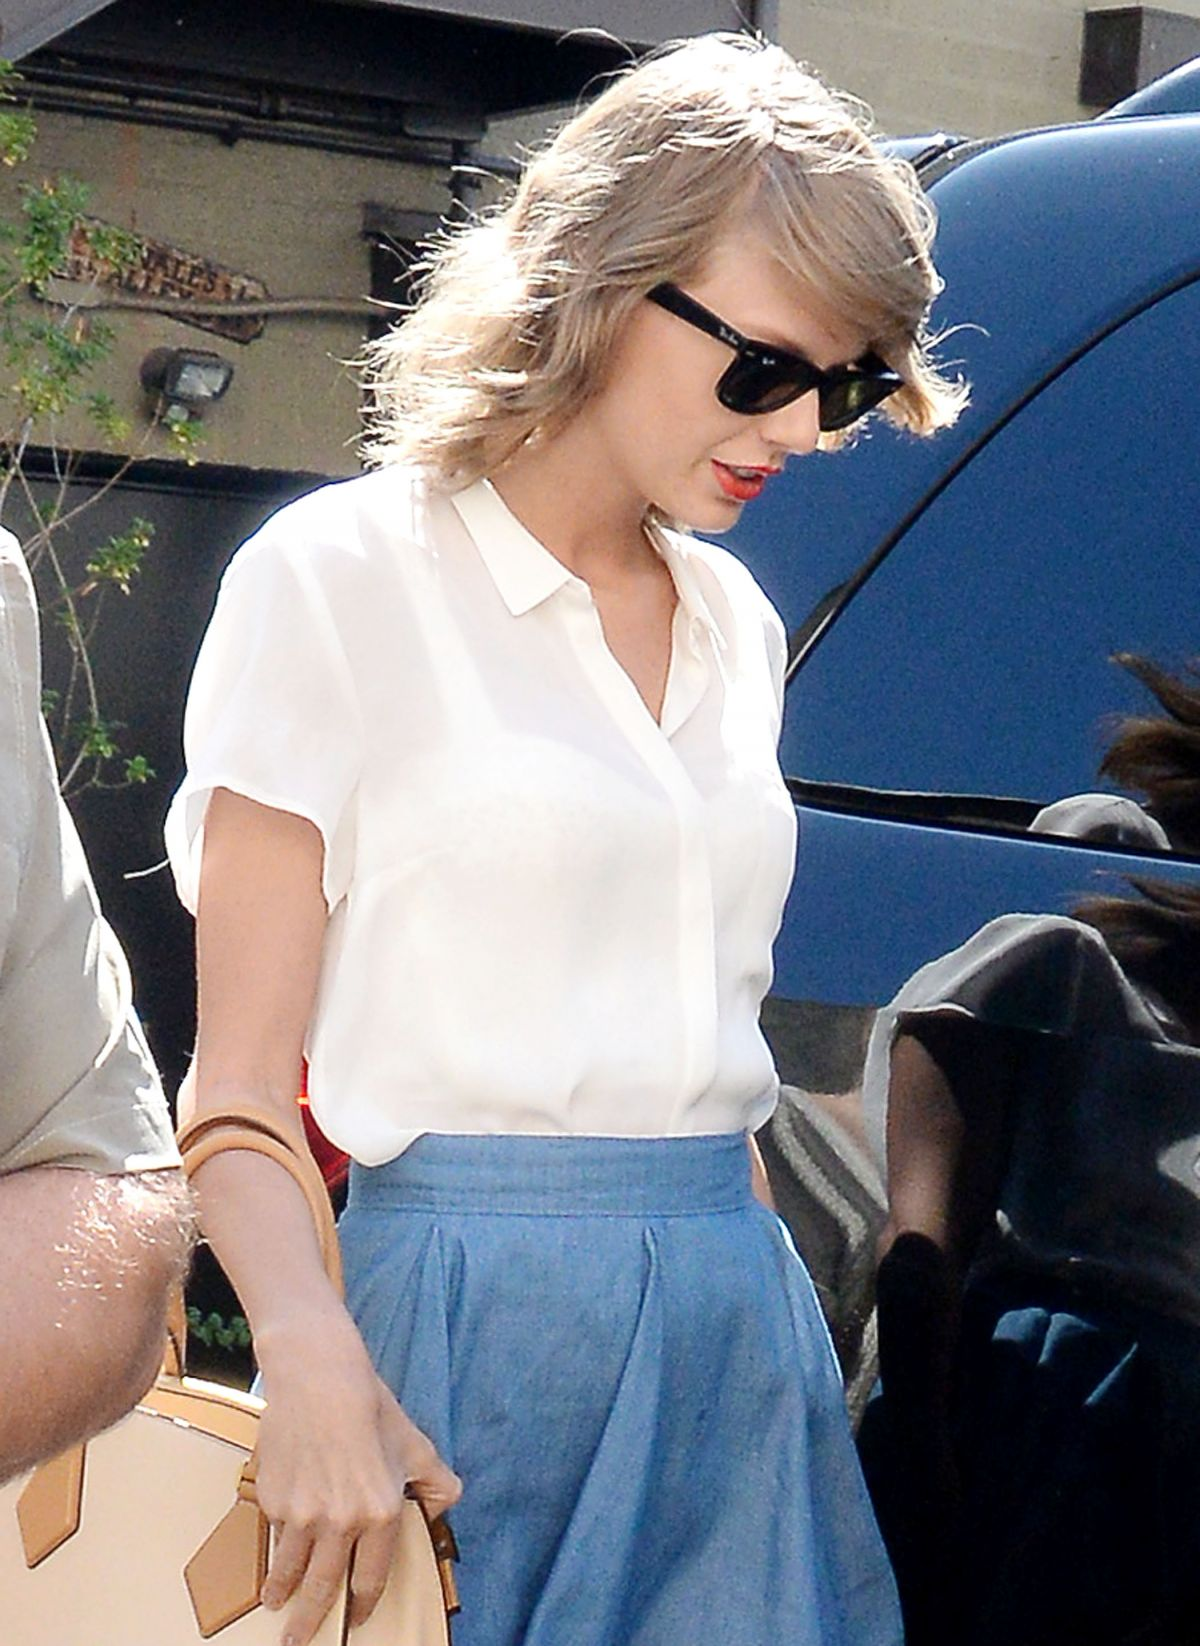 taylor swift leaves sugarfish sushi restaurant in beverly hills 07 28 2015 hawtcelebs. Black Bedroom Furniture Sets. Home Design Ideas